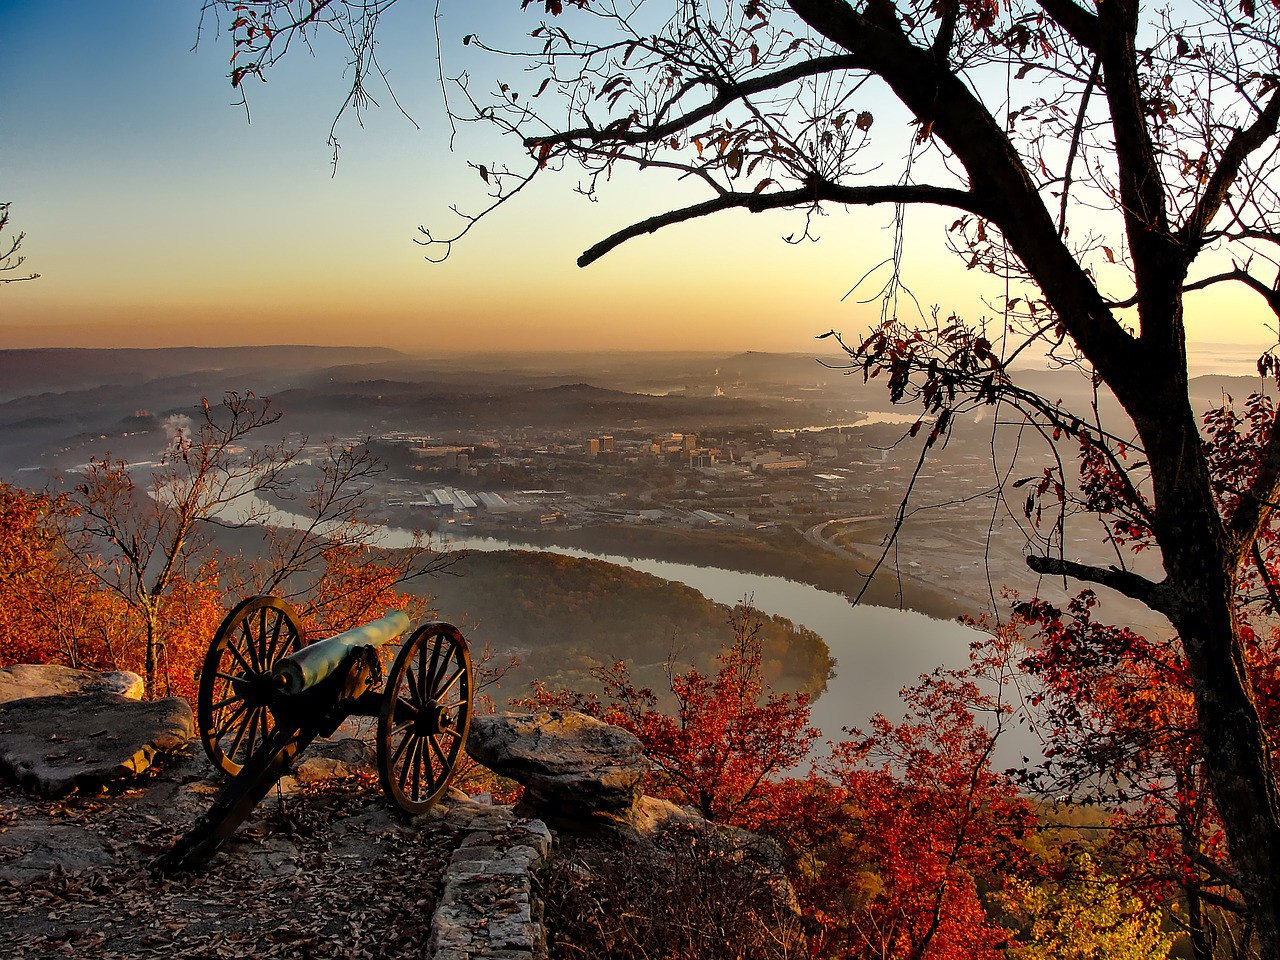 The 10 Best Restaurants In Chattanooga, Tennessee